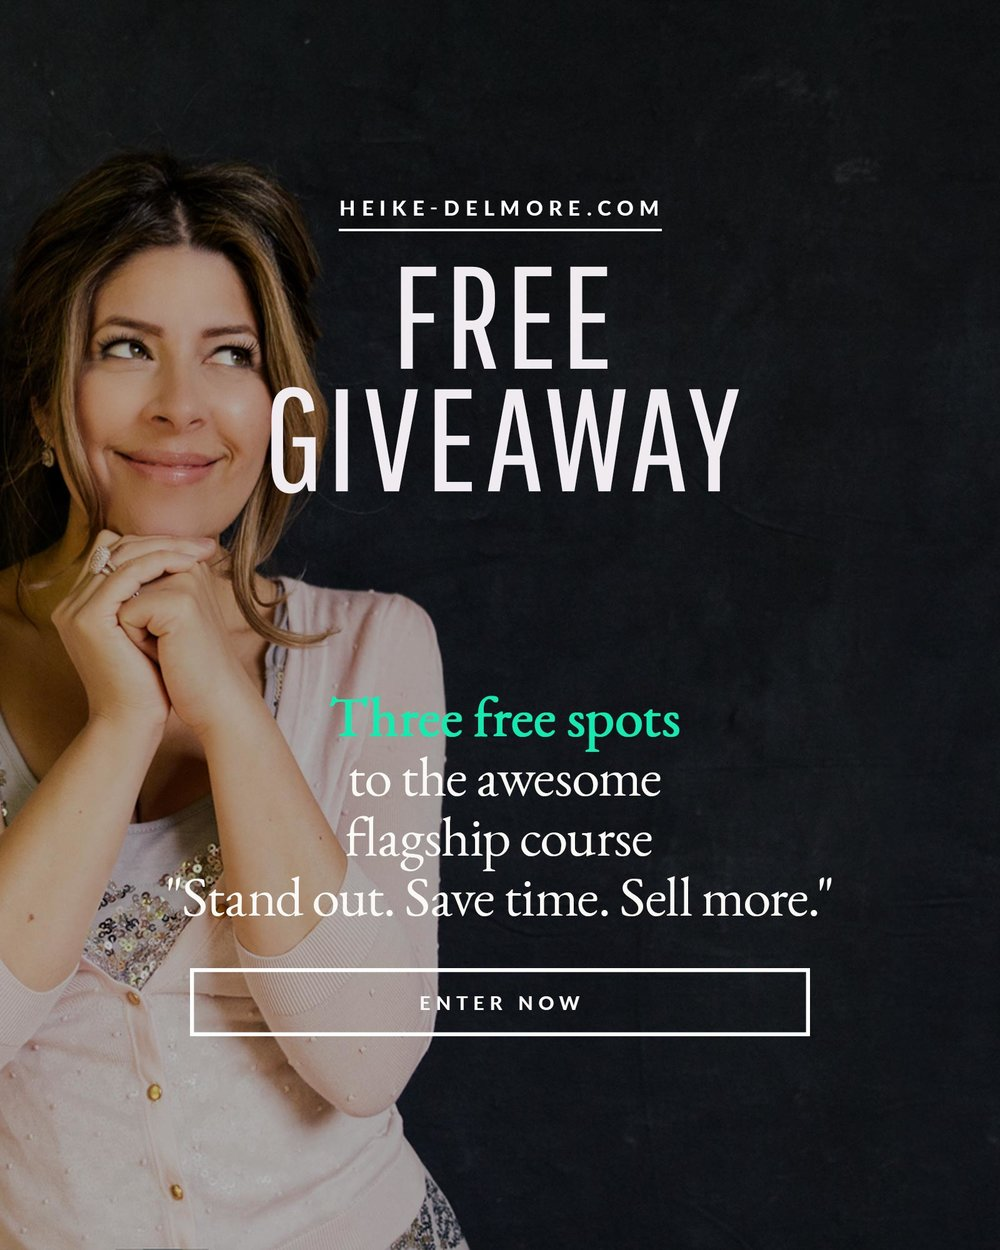 Wedding Photography Business Course Free Giveaway